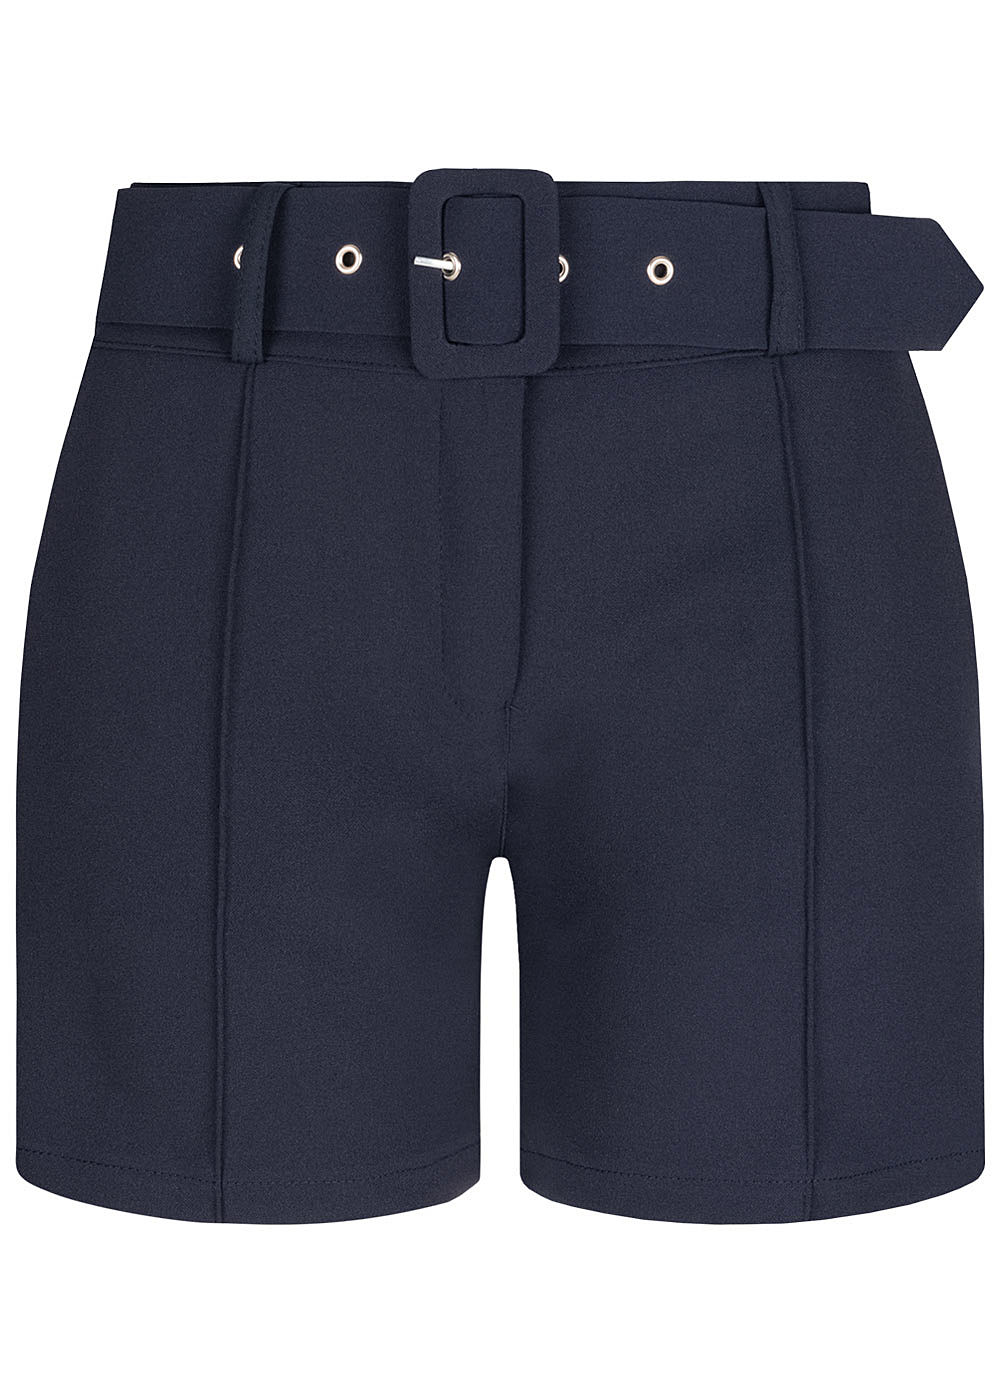 Fresh Lemons Damen High-Waist Shorts inkl. breiter Gürtel 2-Pockets navy blau - Art.-Nr.: 20055057